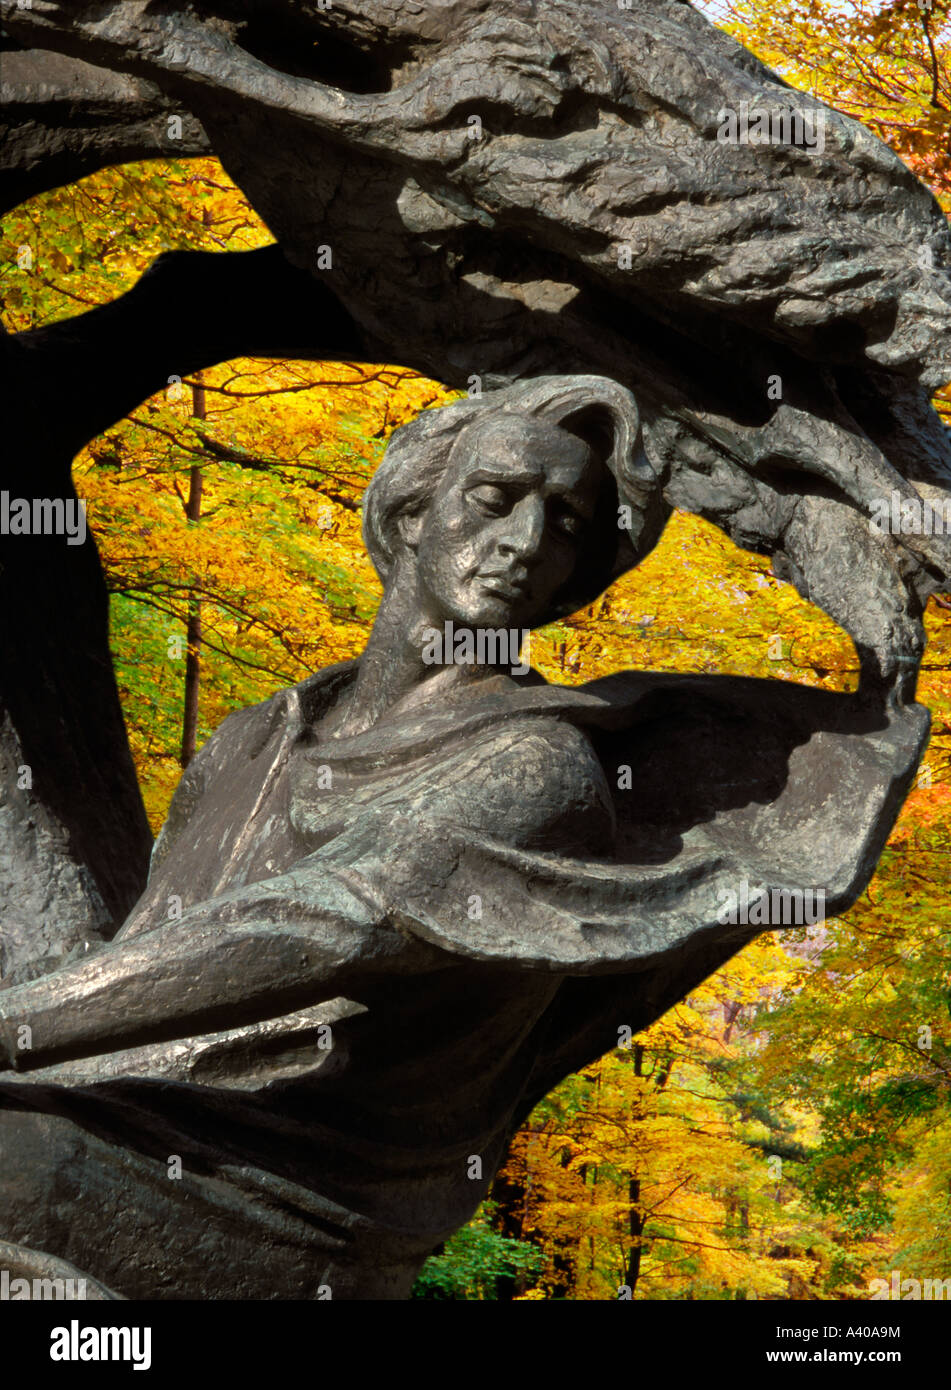 Poland Warsaw Monument to Frederic Chopin - Stock Image